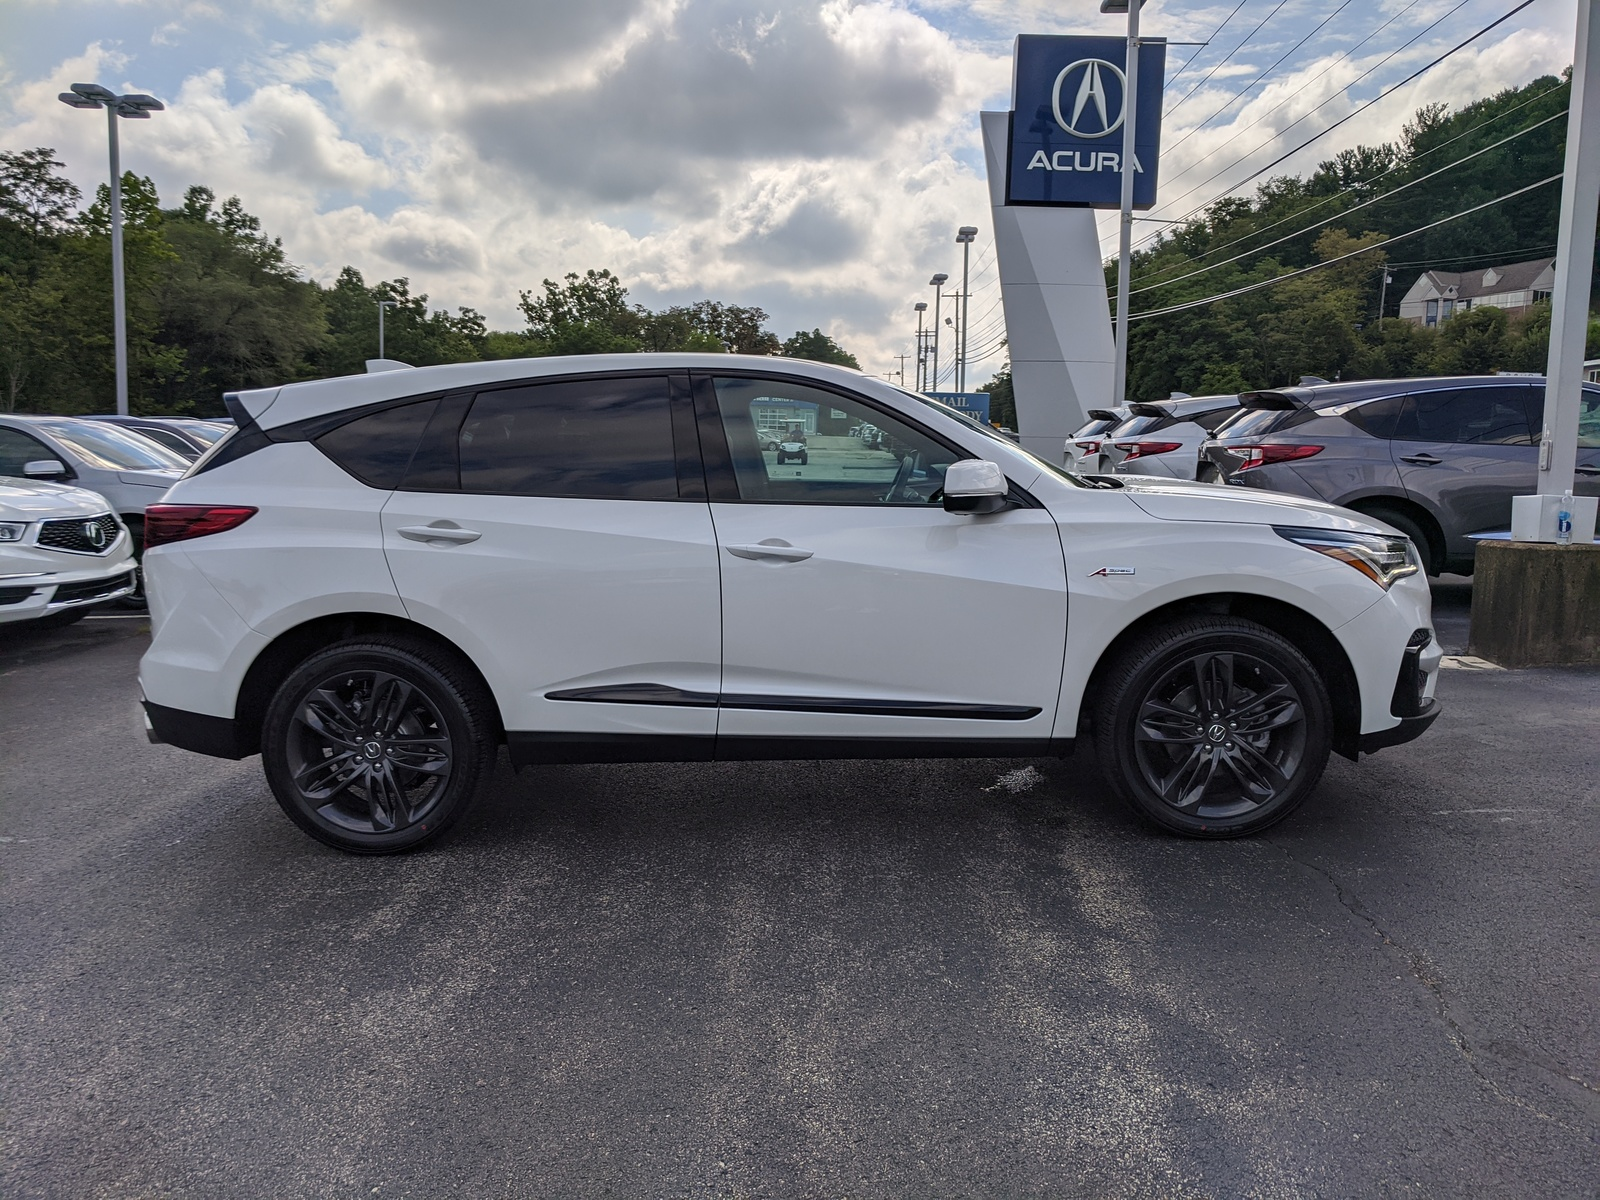 new 2021 acura rdx shawd with aspec package in platinum